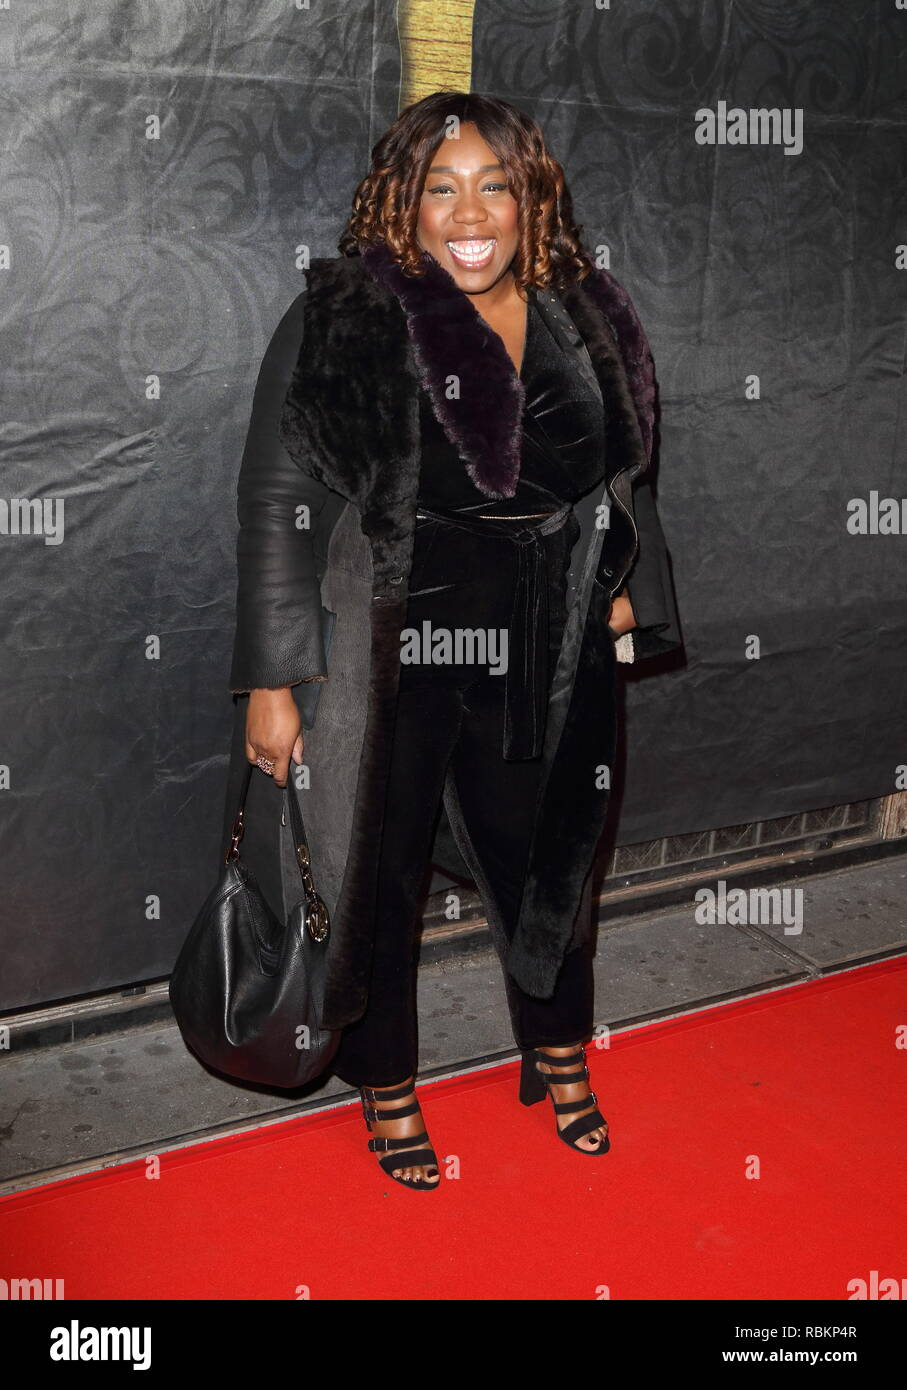 London, UK. 10th Jan, 2019. Chizzy Akudolu seen during The Gold Movie Awards at Regent Street Cinema in London. Credit: Keith Mayhew/SOPA Images/ZUMA Wire/Alamy Live News Stock Photo